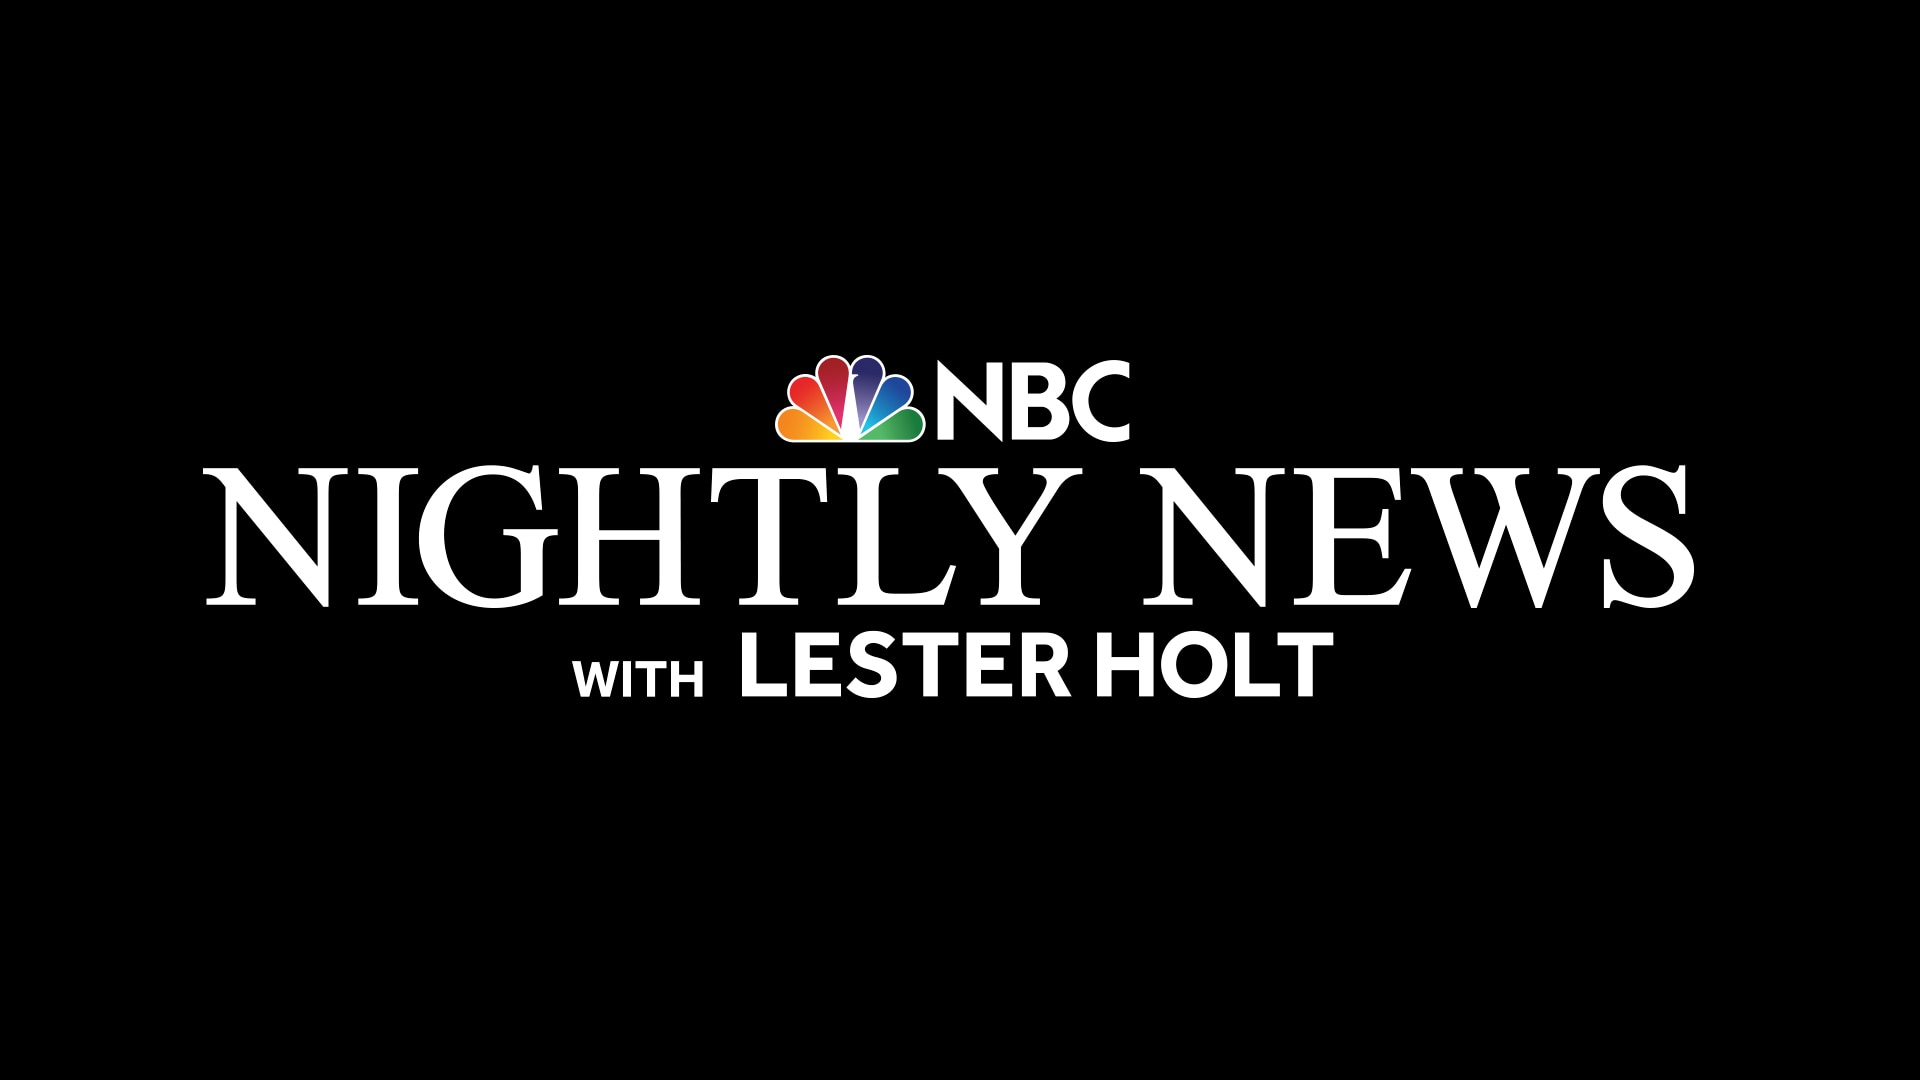 NBC Nightly News with Lester Holt - NBC com